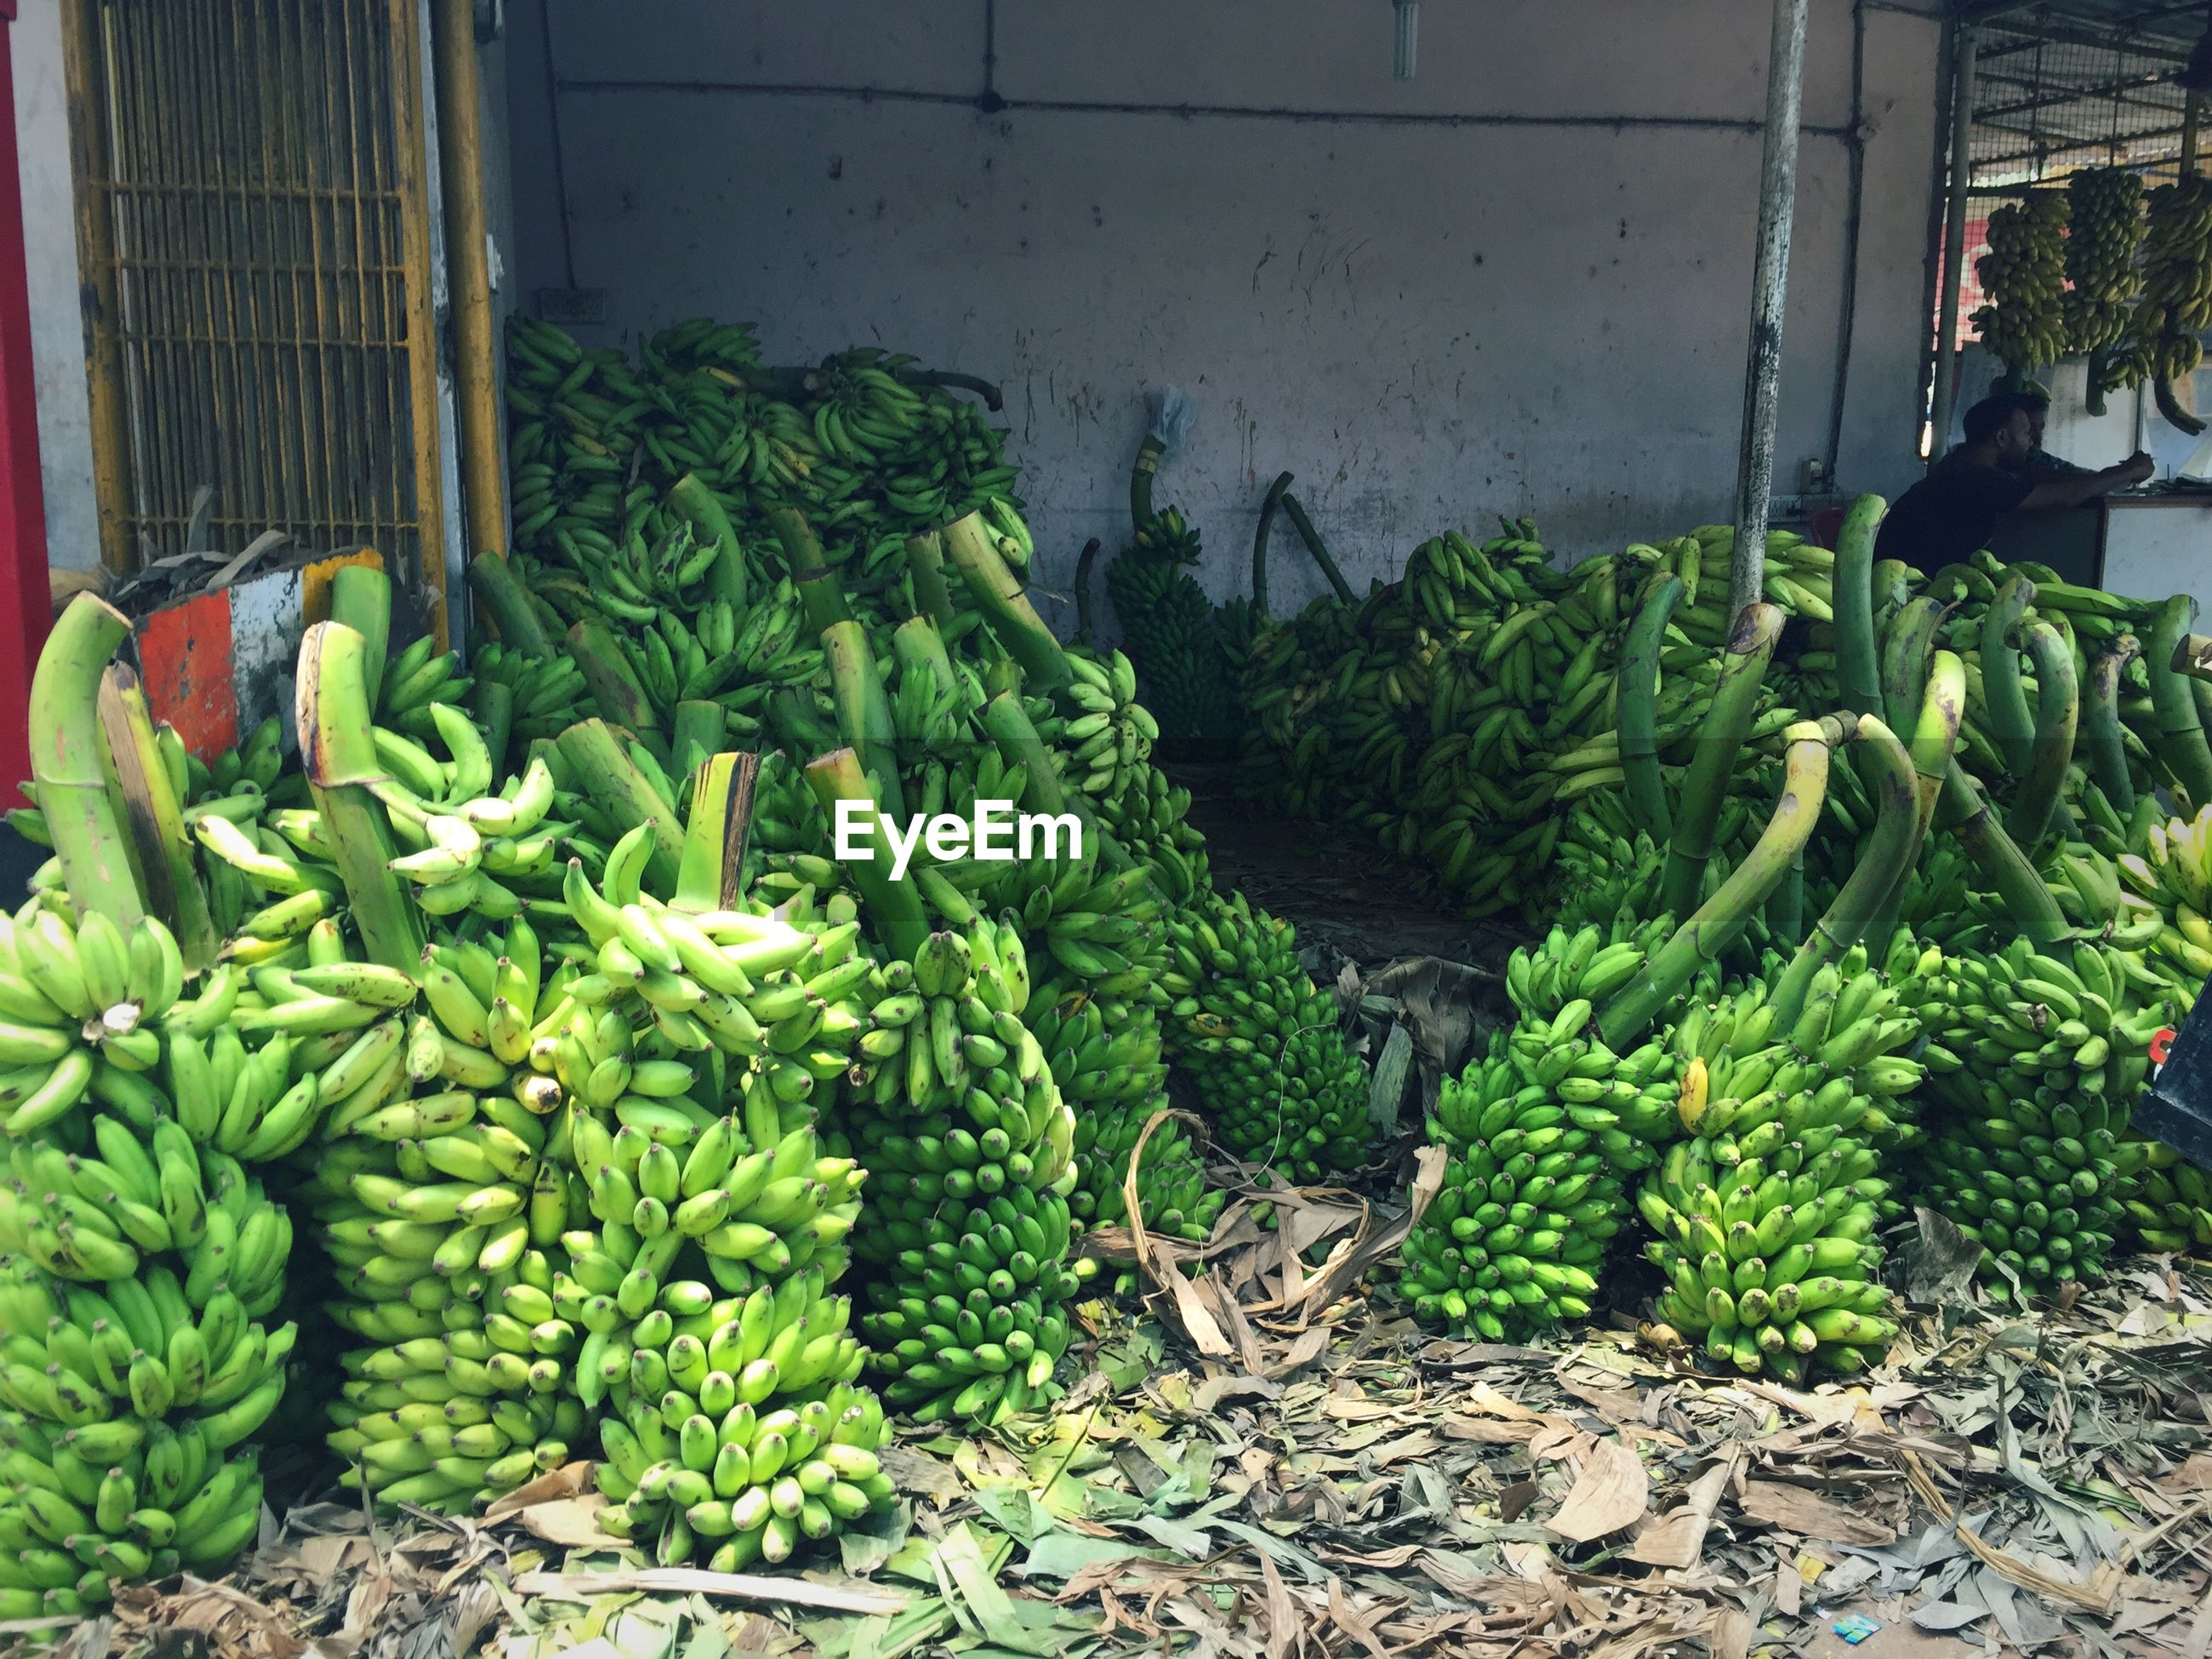 Raw bananas for sale in market